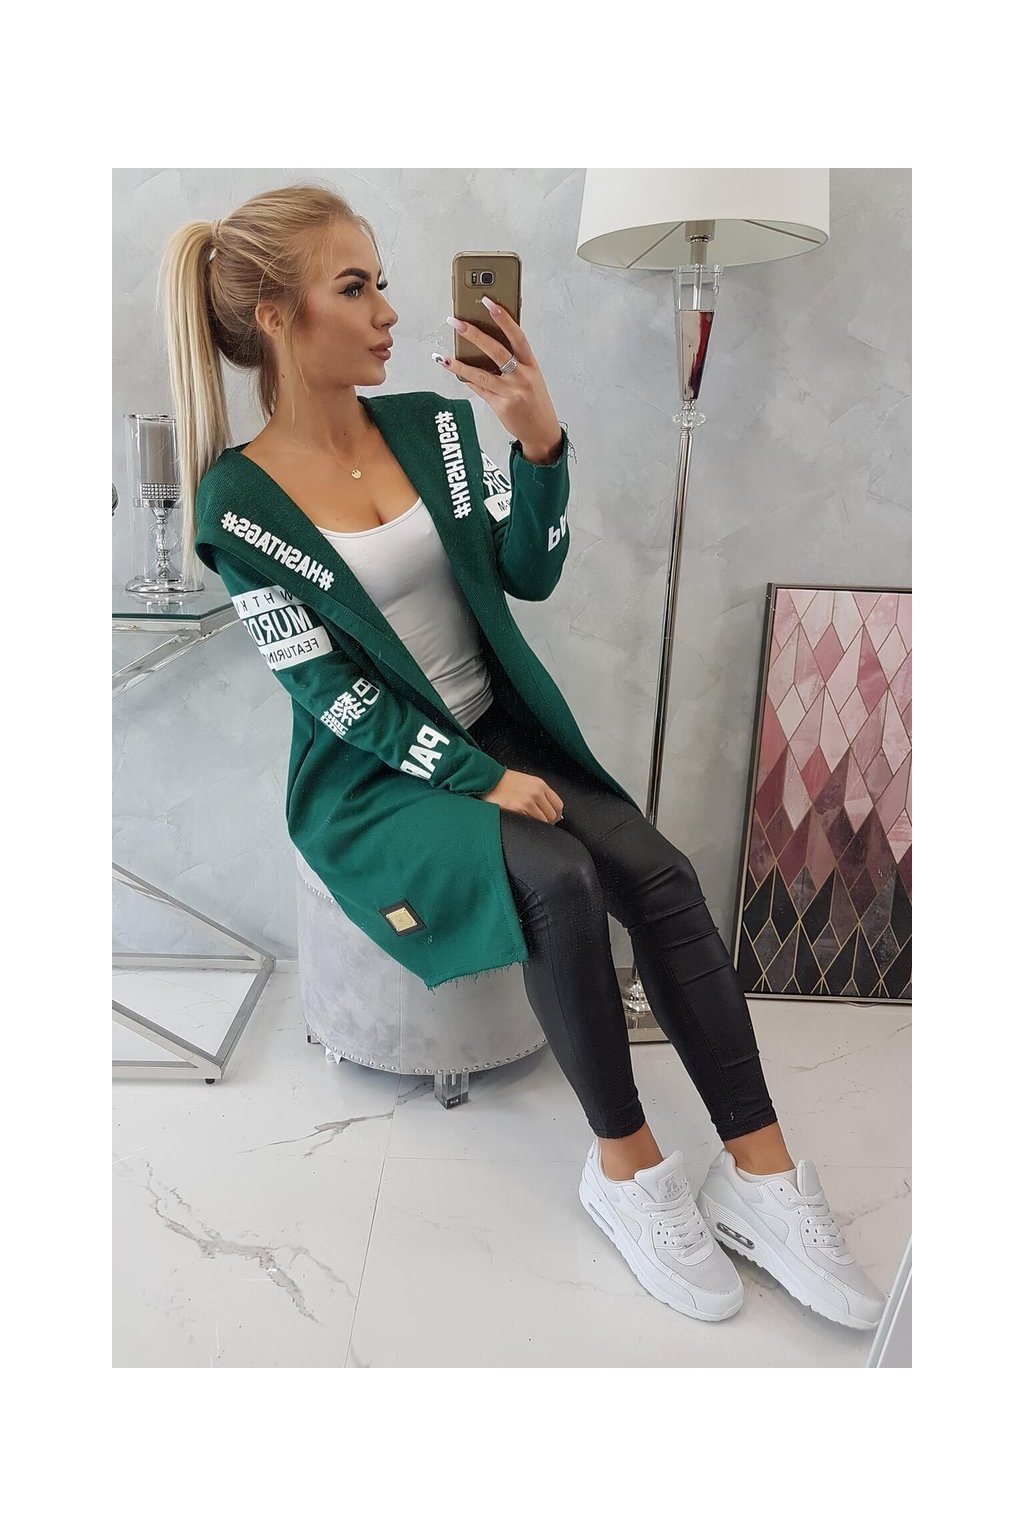 eng pl Coatee with subtitles green 18570 9